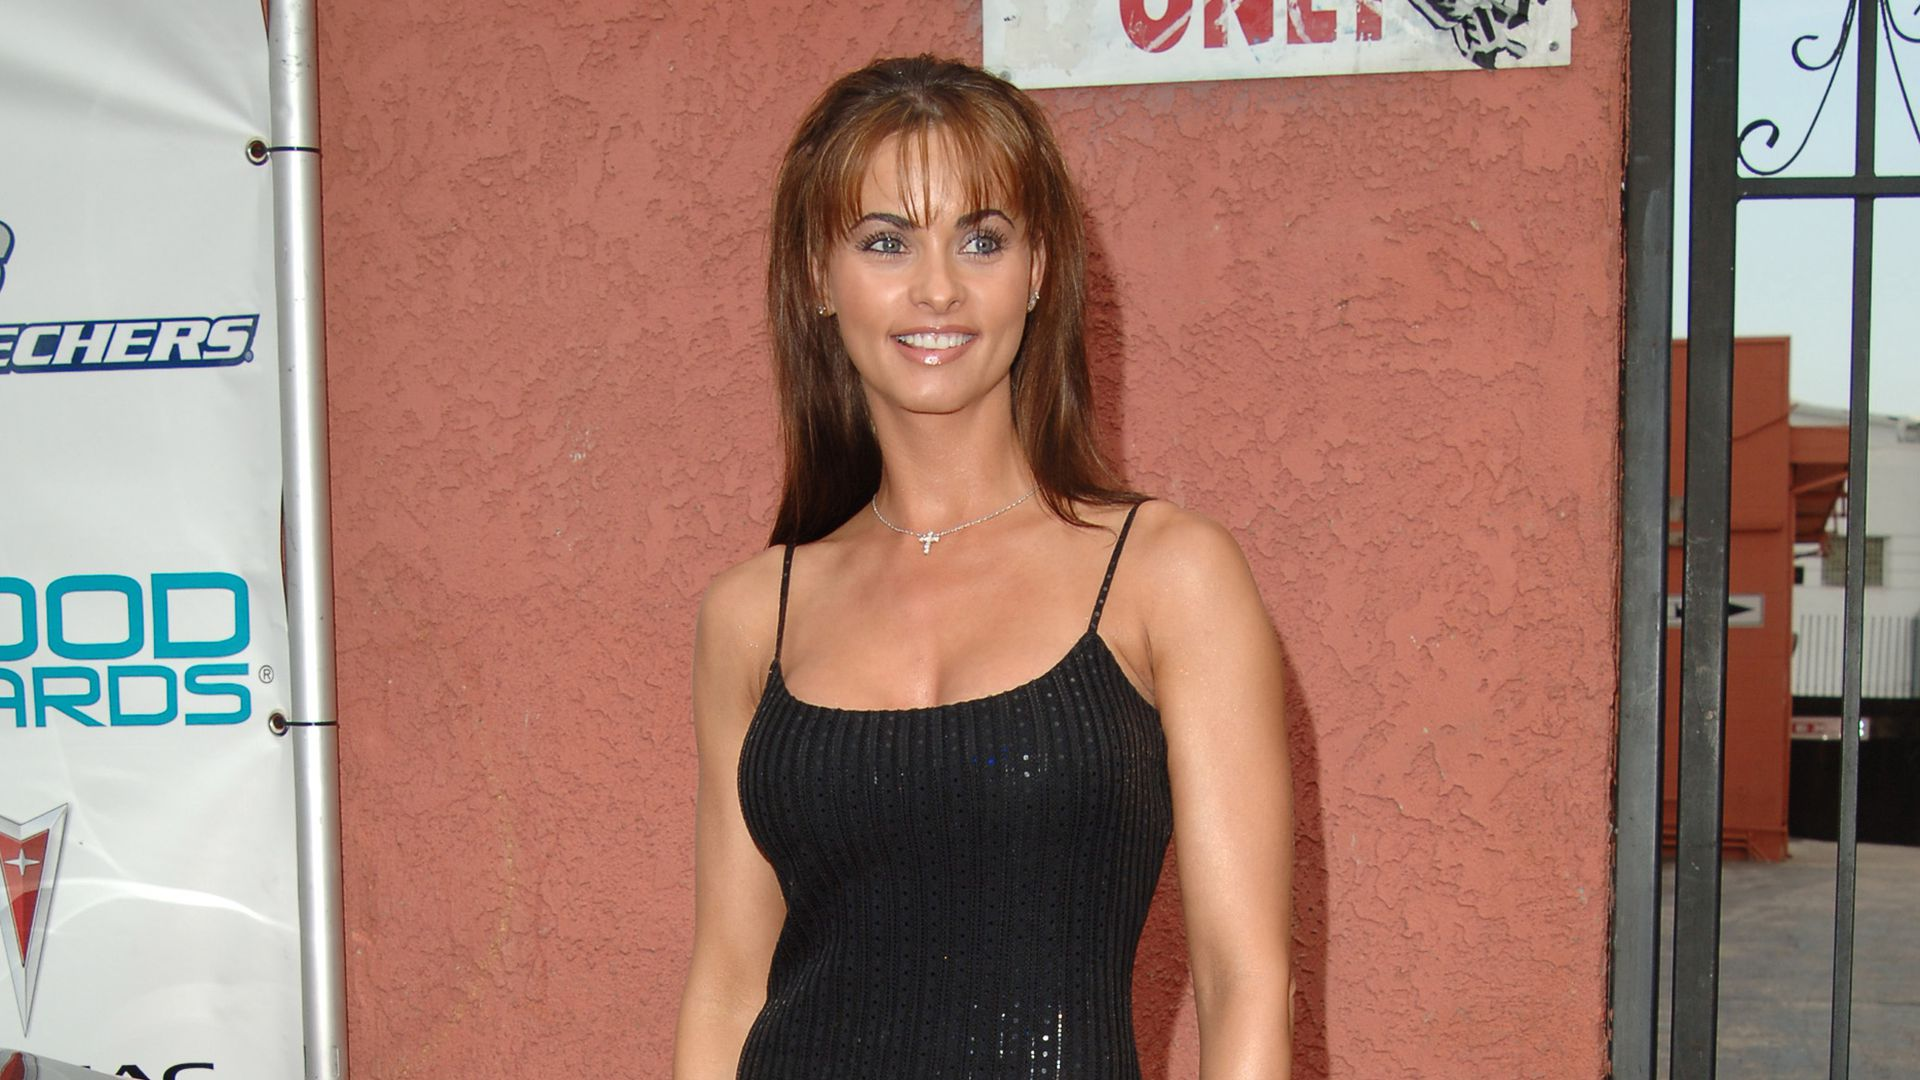 d9166f83f2 Playboy model sues to speak about alleged affair with Trump. Karen McDougal  ...